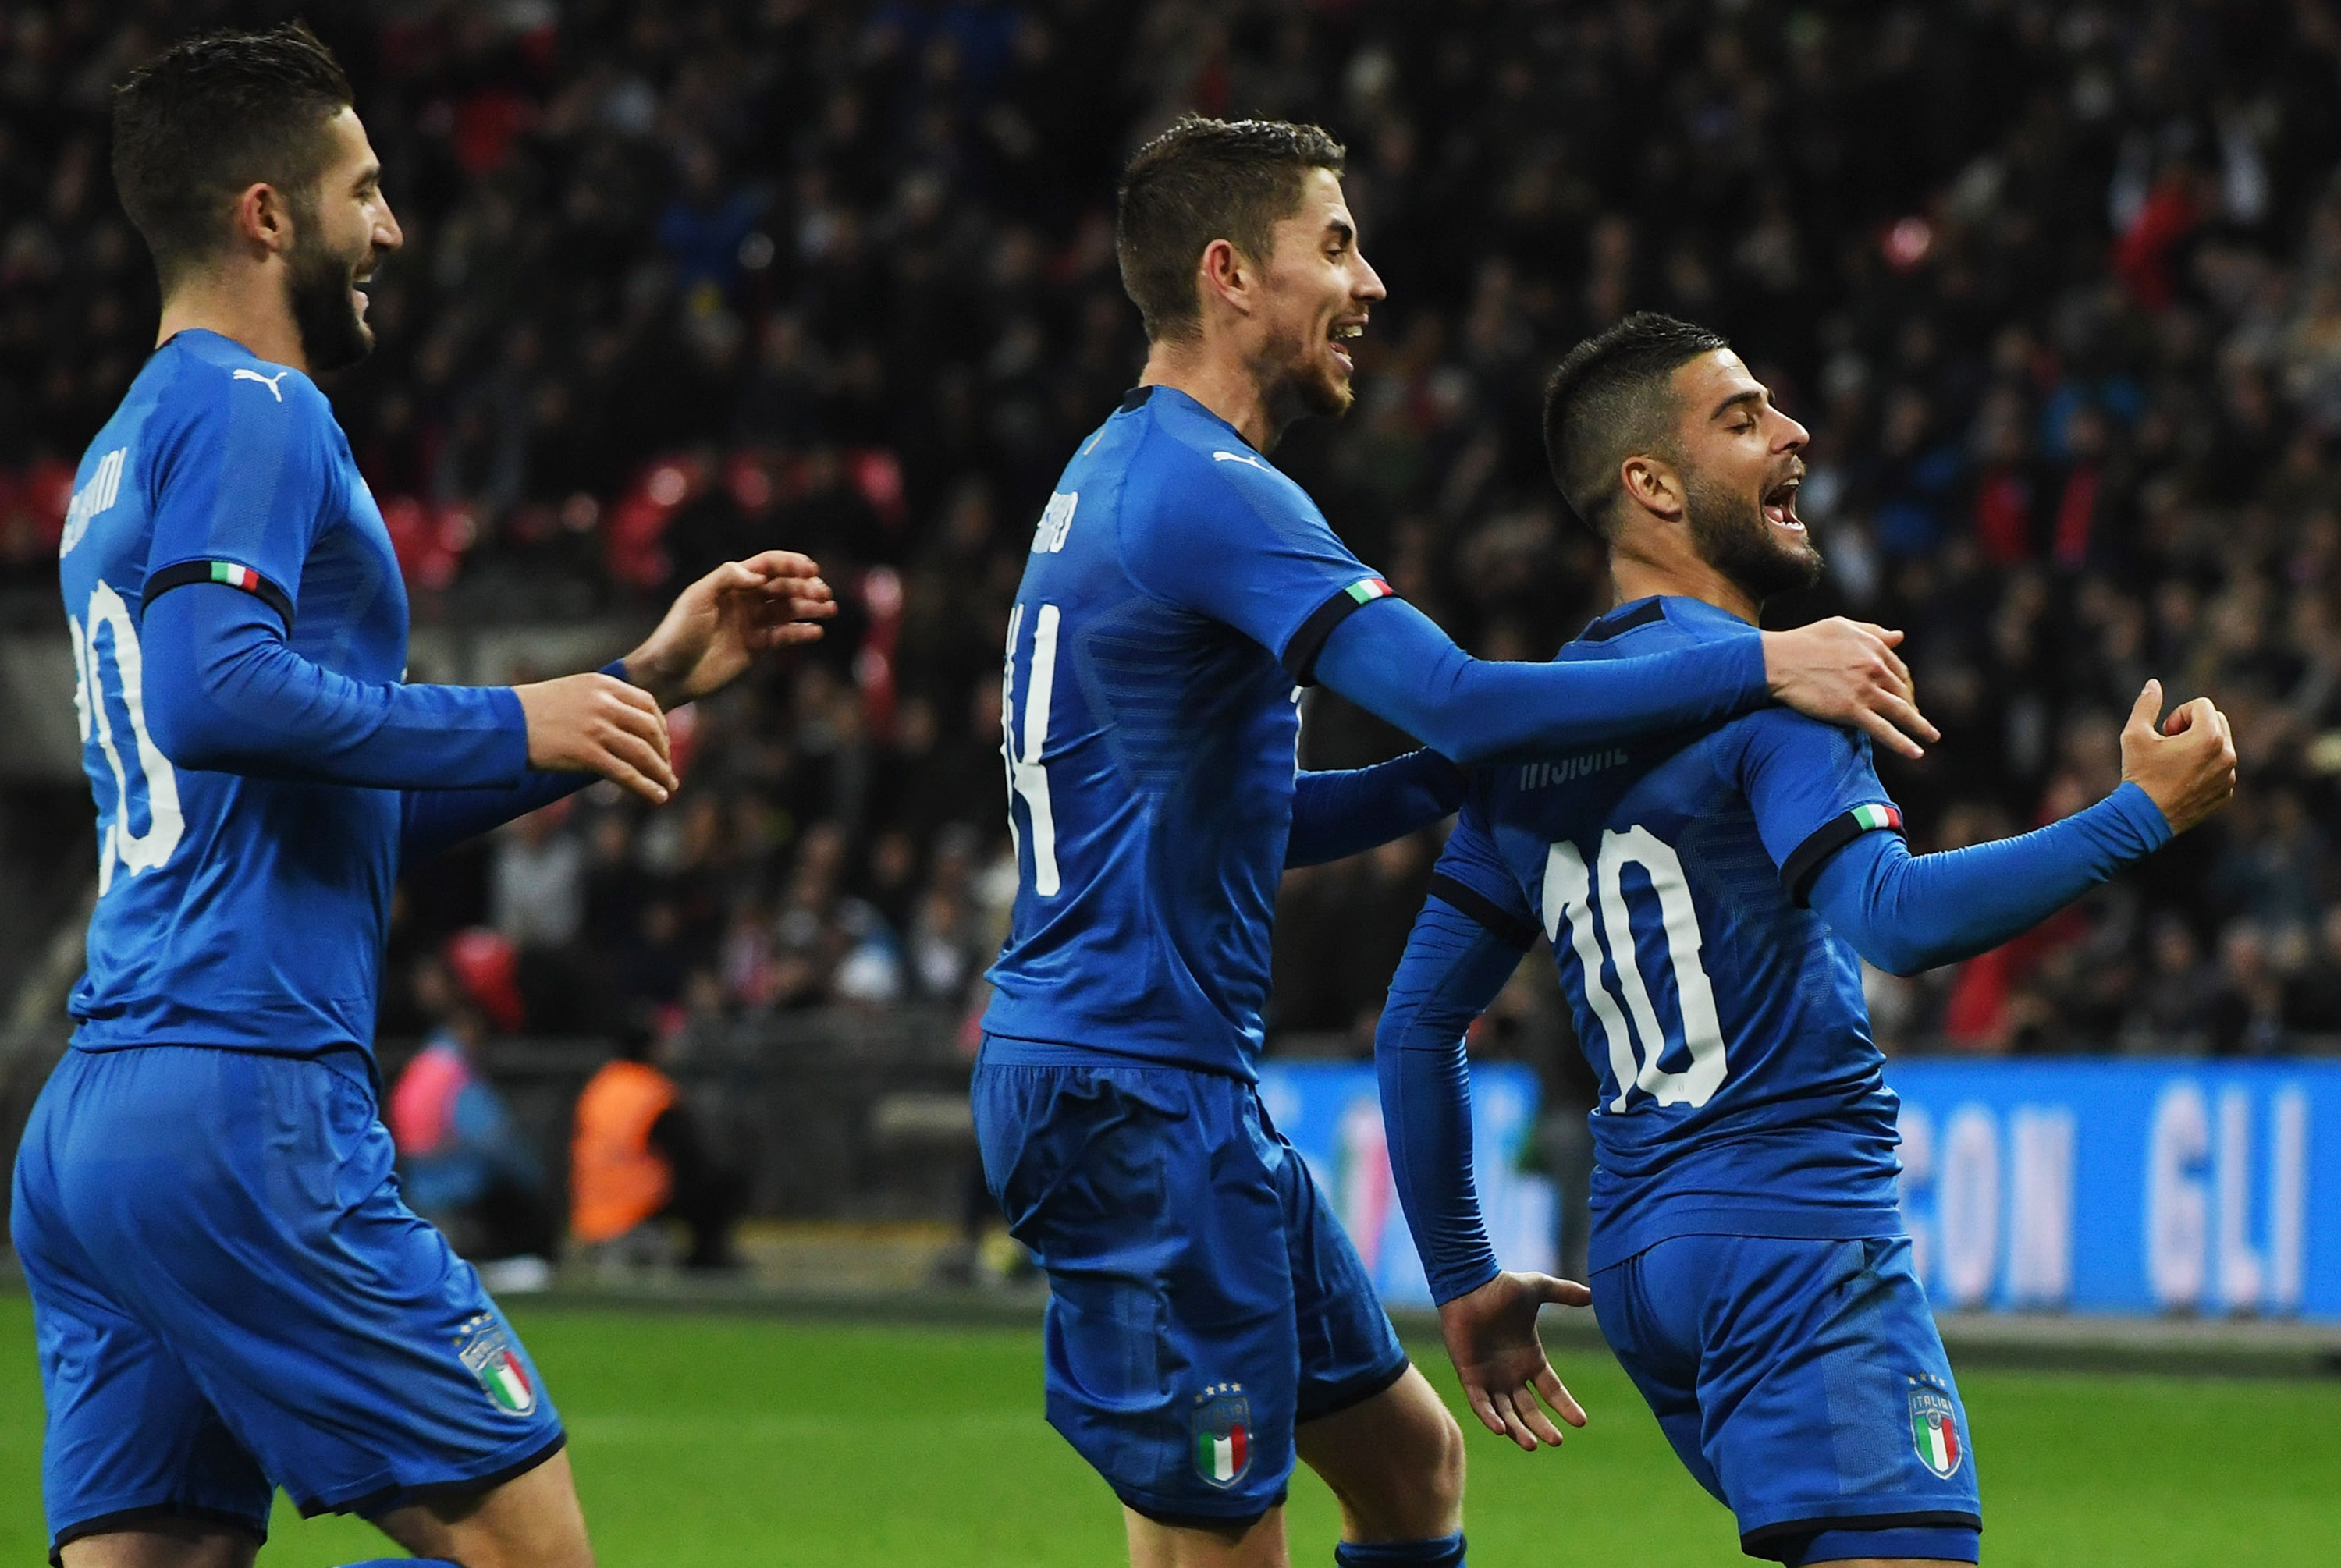 Insigne has been in sublime touch. (Picture Courtesy - AFP/Getty Images)